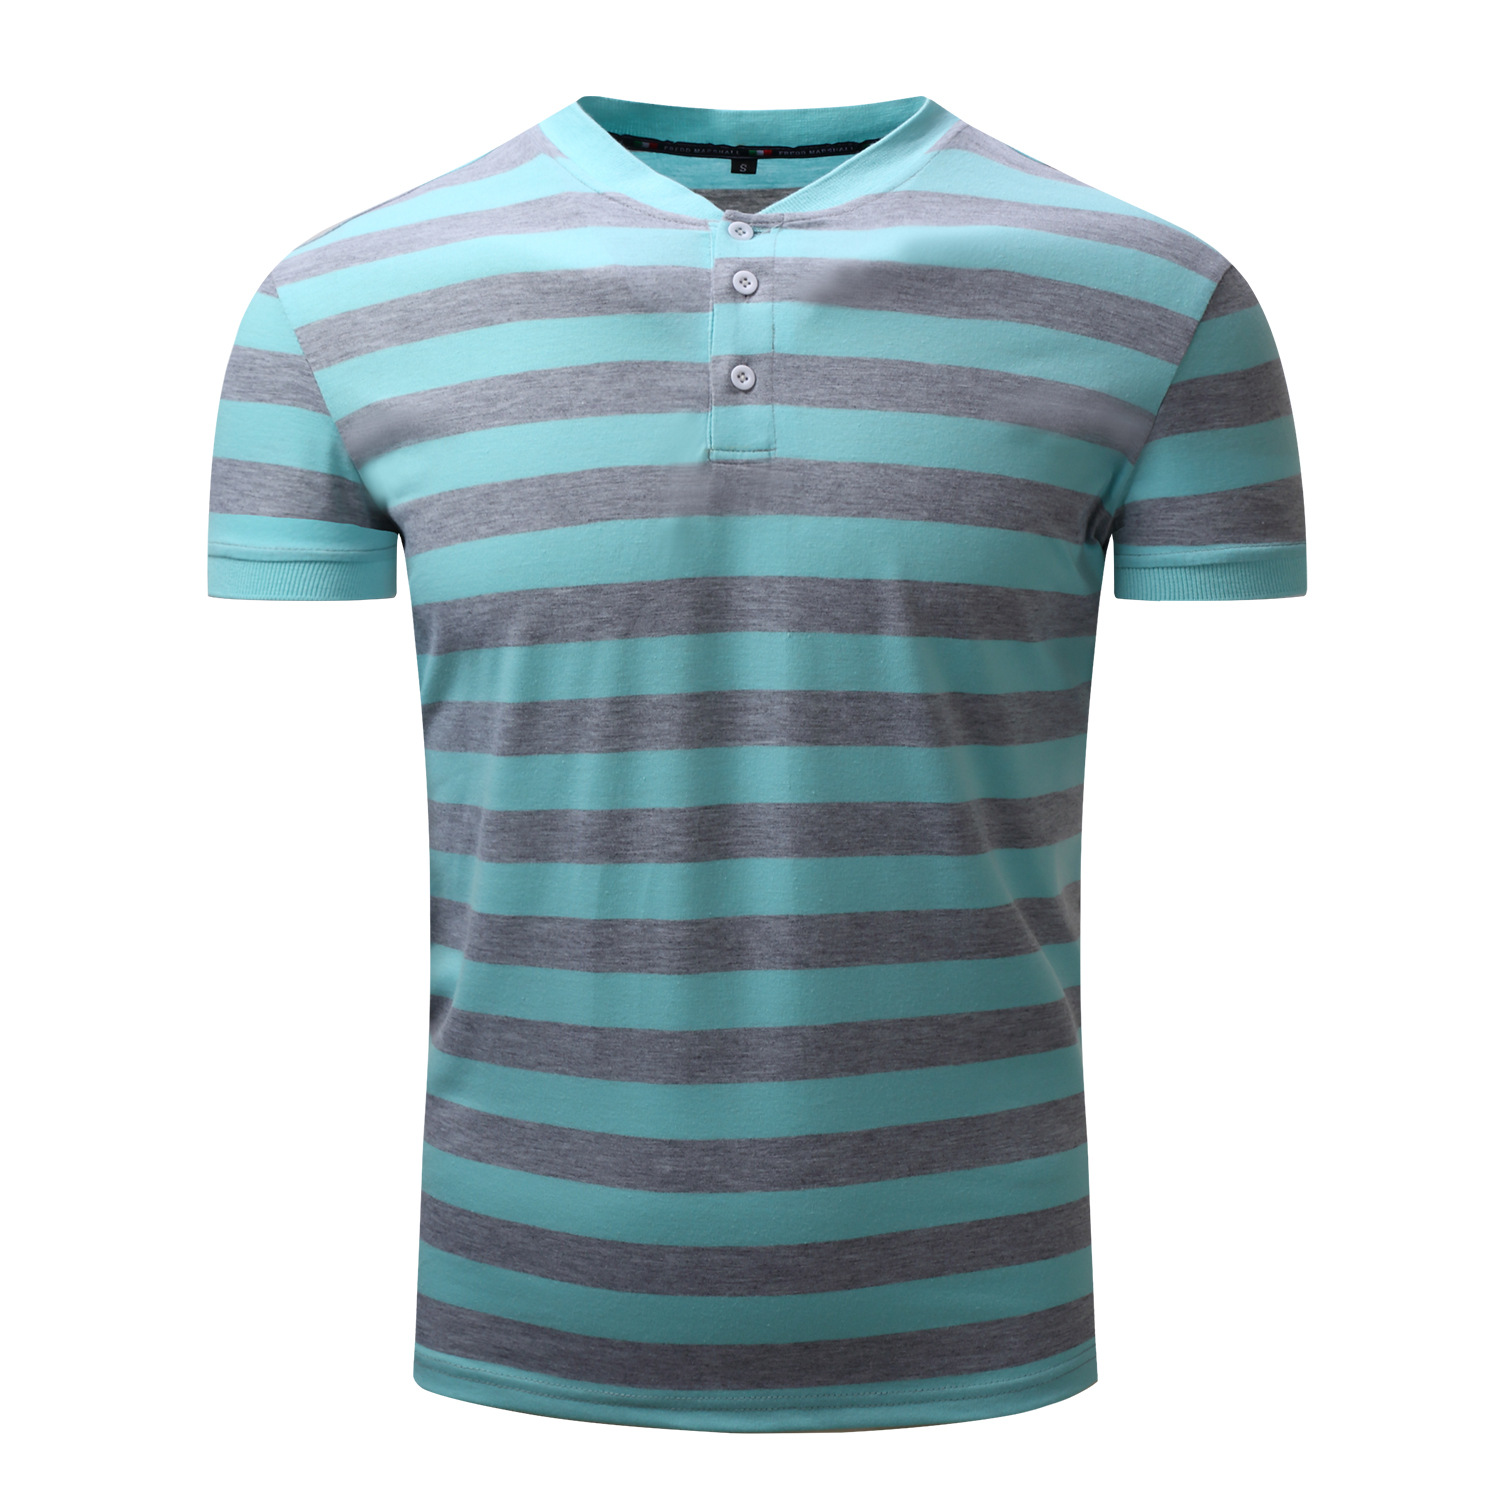 Plus Size 4xl 5xl 6xl 7xl 8xl 9xl Mens Summer Short Sleeve O Neck T Shirt 2-4 Delicacies Loved By All Tops & Tees Men's Clothing